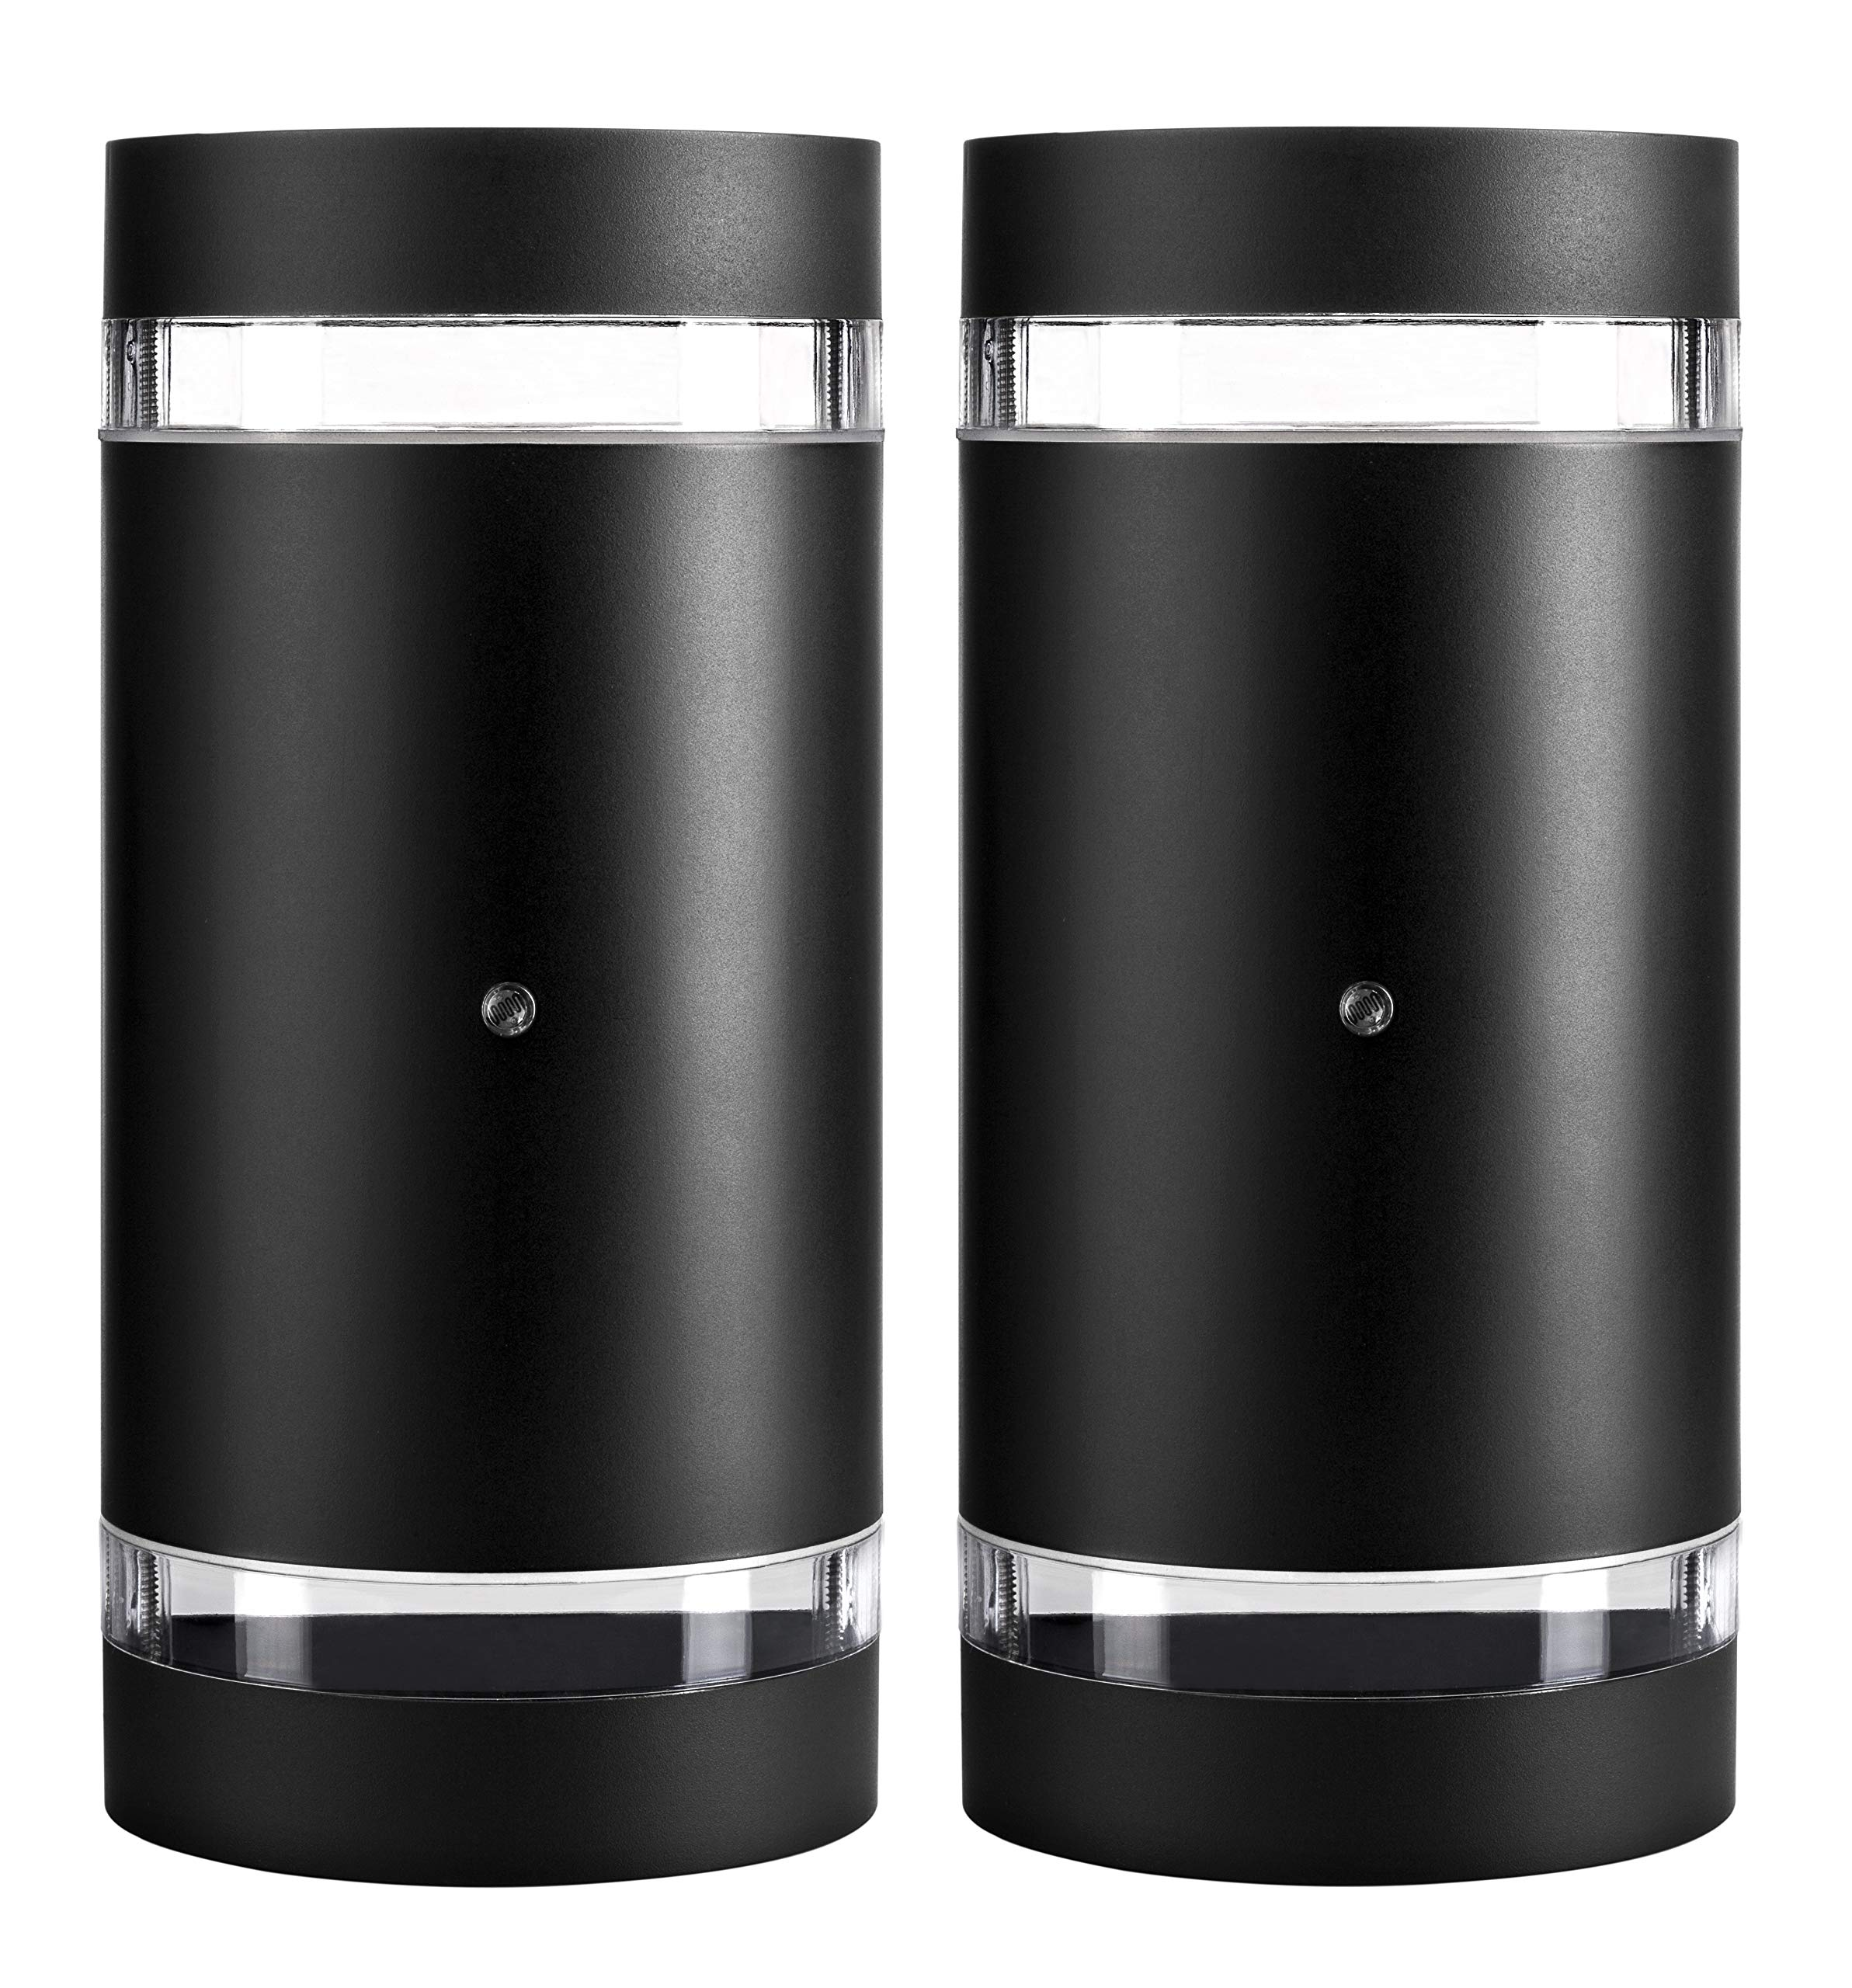 Hyperikon LED Porch Sconce Cylinder Light 12W, Black Modern Wall Mount with Photocell, 1000 lumen, 4000K (Daylight Glow), IP65 Waterproof Outdoor Up Down Light (2 Pack) by Hyperikon